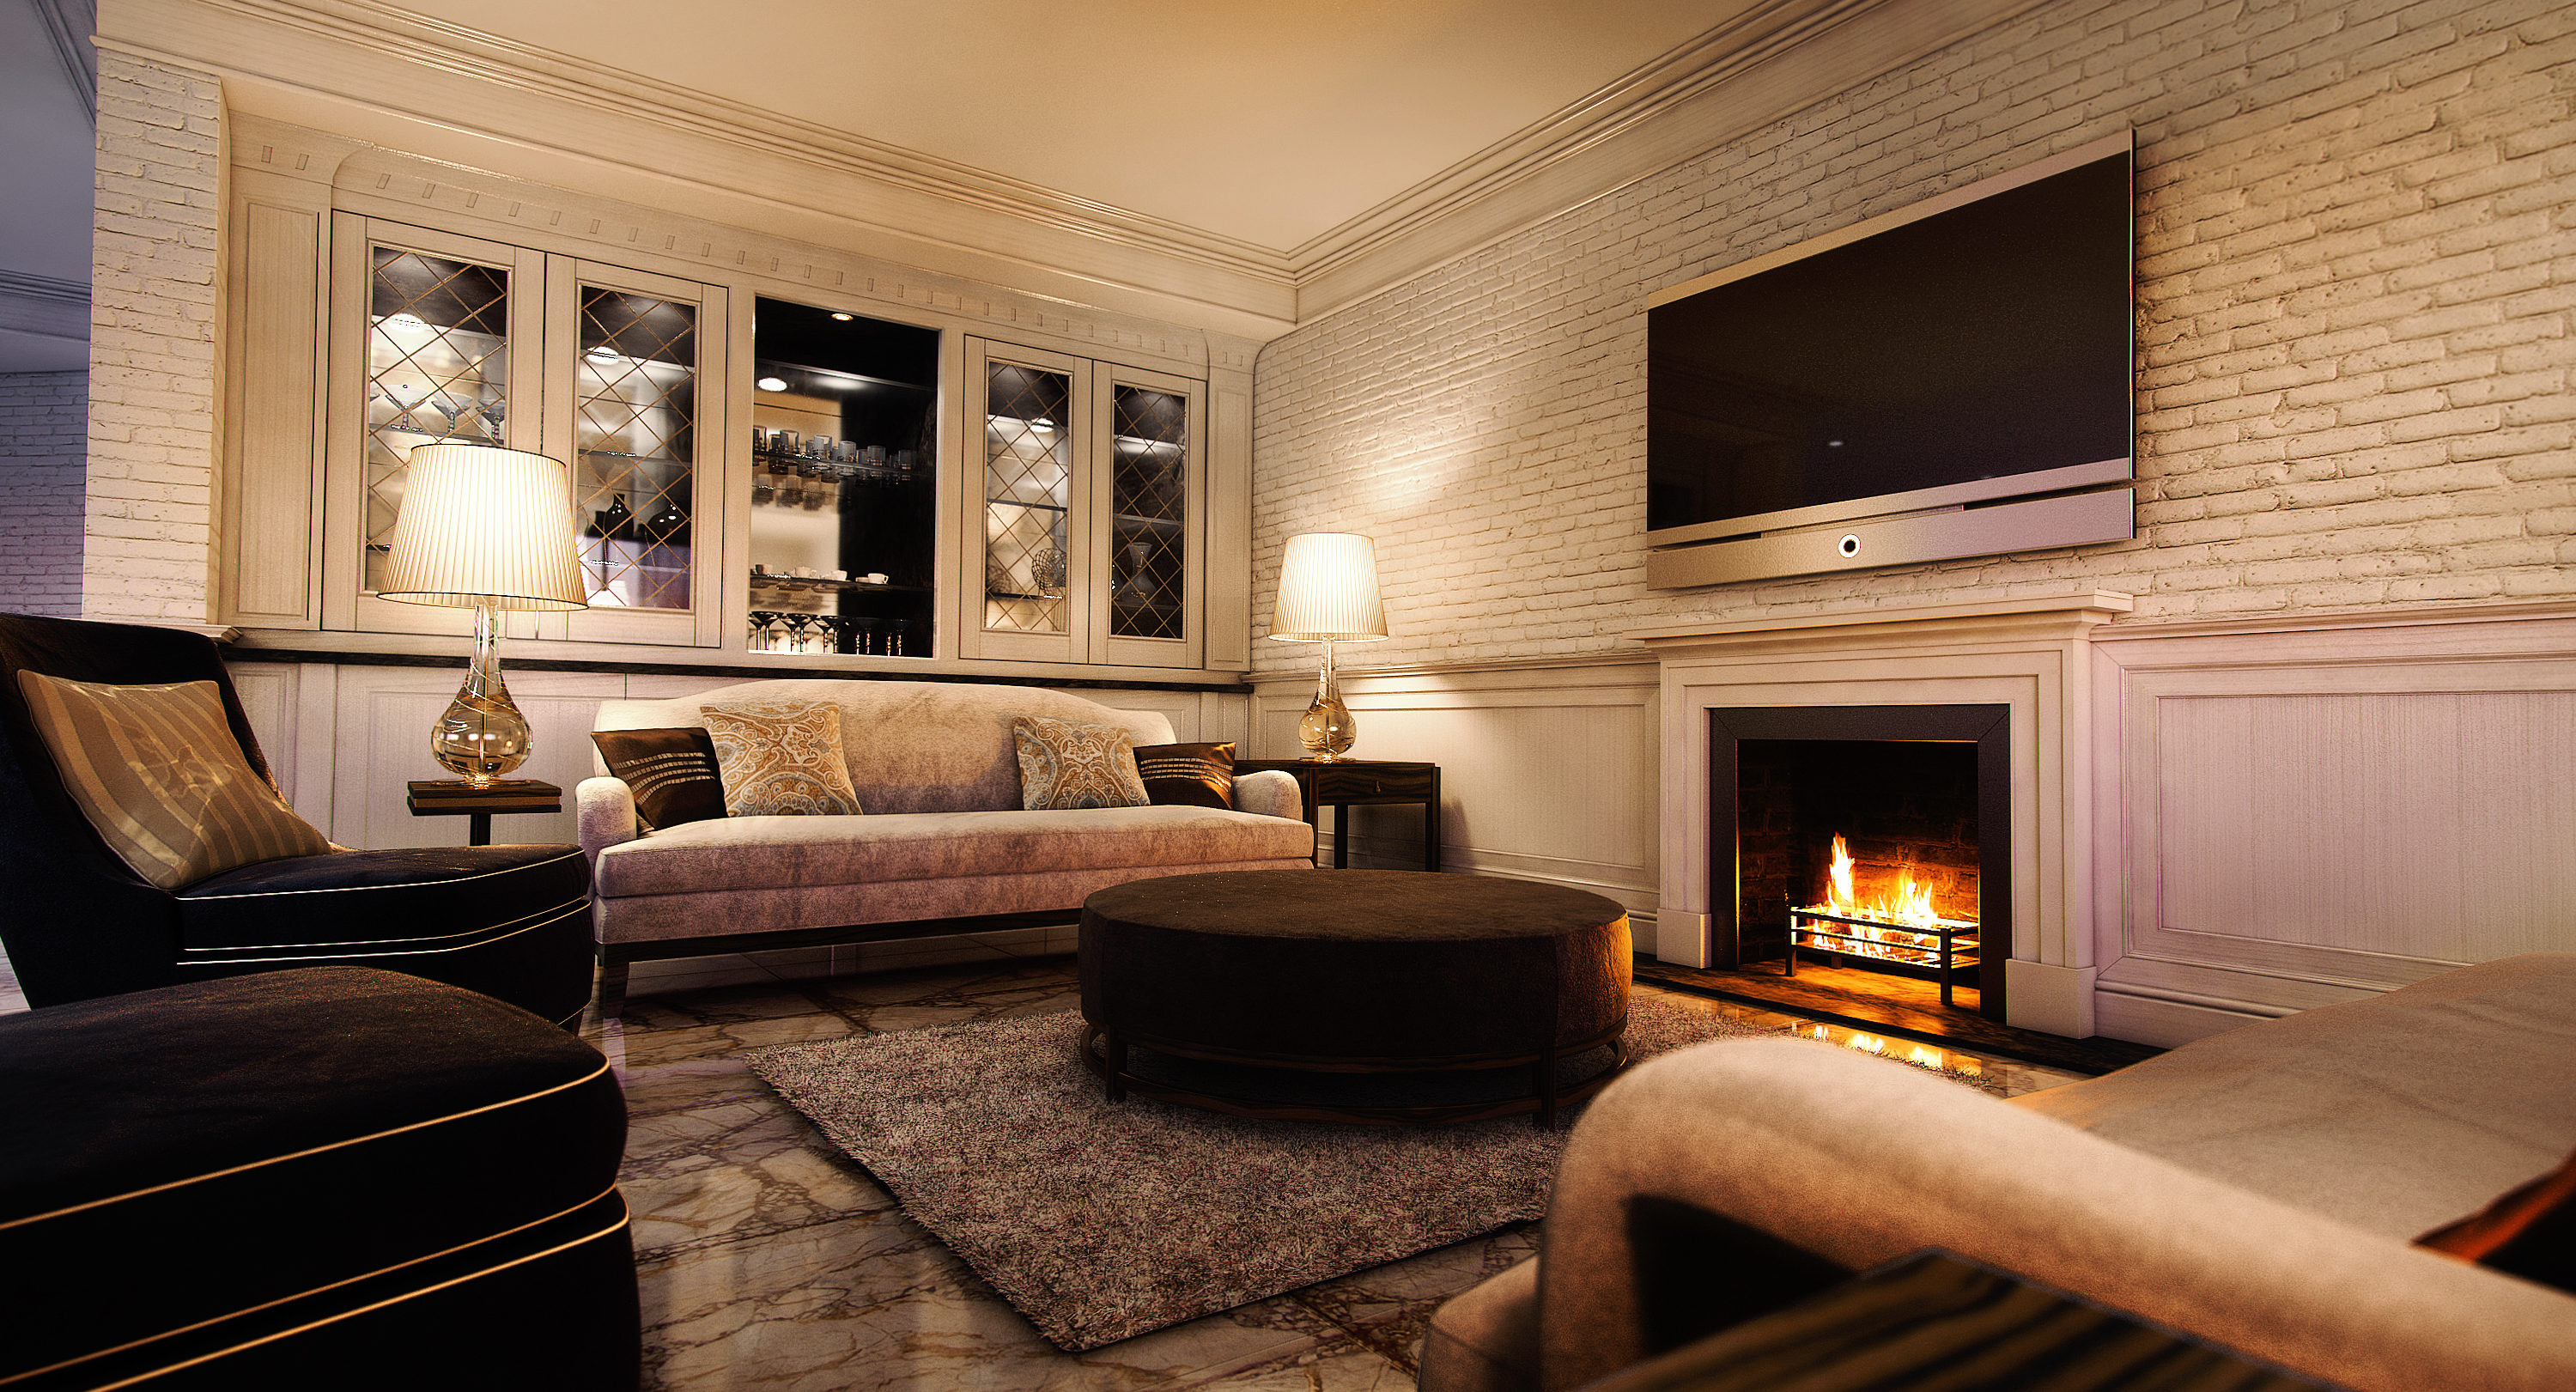 Winter is coming: great ideas for heating your home Winter Winter is coming: great ideas for heating your home winter is coming great ideas to decorate your home  interior design